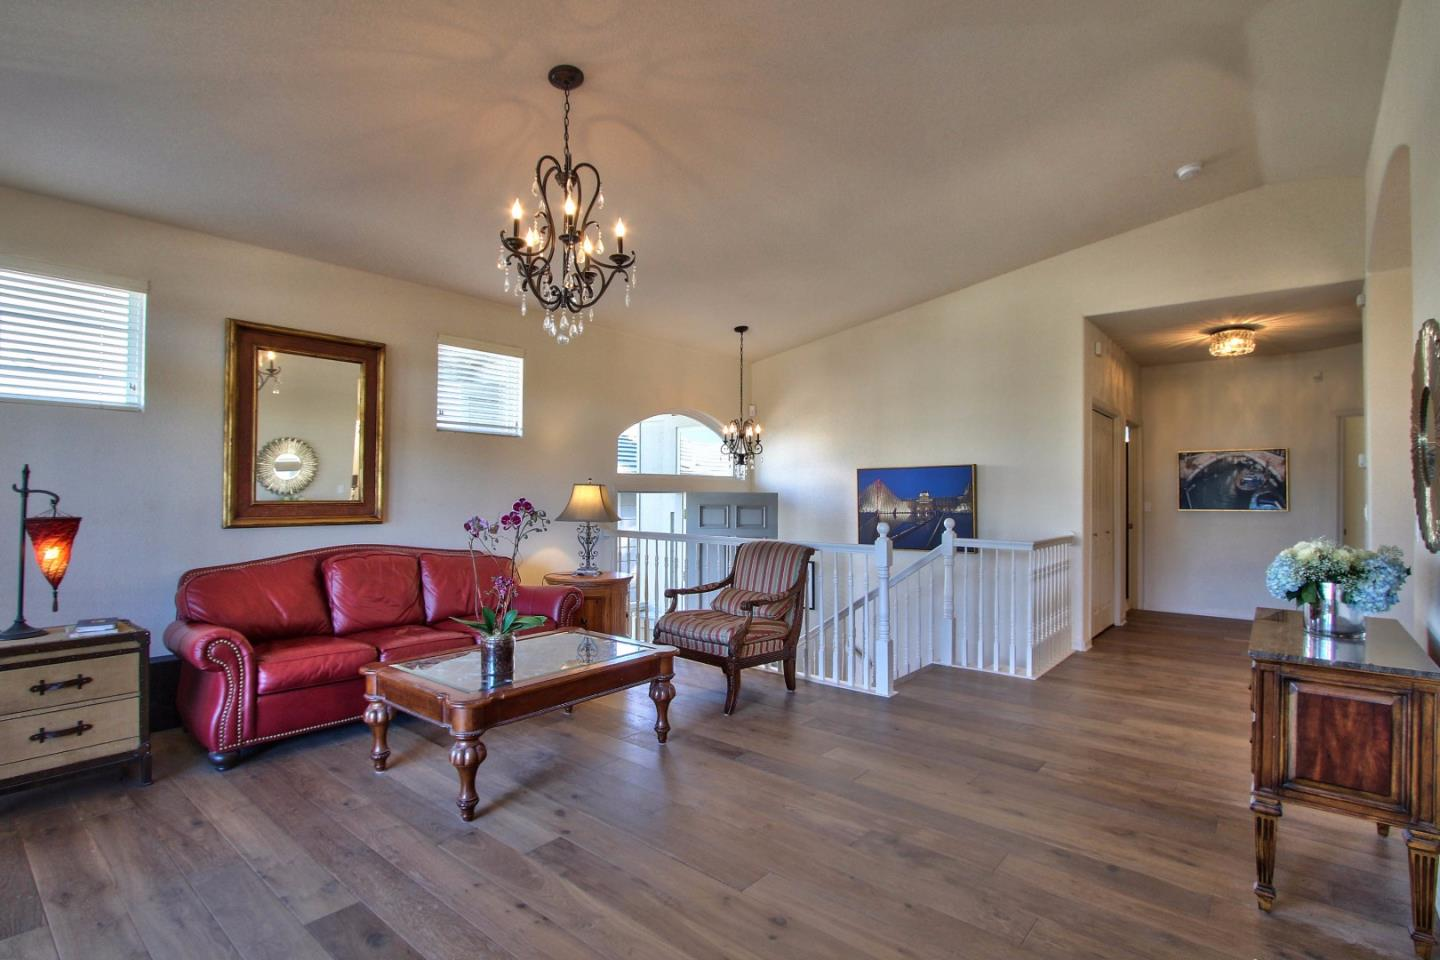 Additional photo for property listing at 10480 Fairway Ln  CARMEL VALLEY, CALIFORNIA 93923